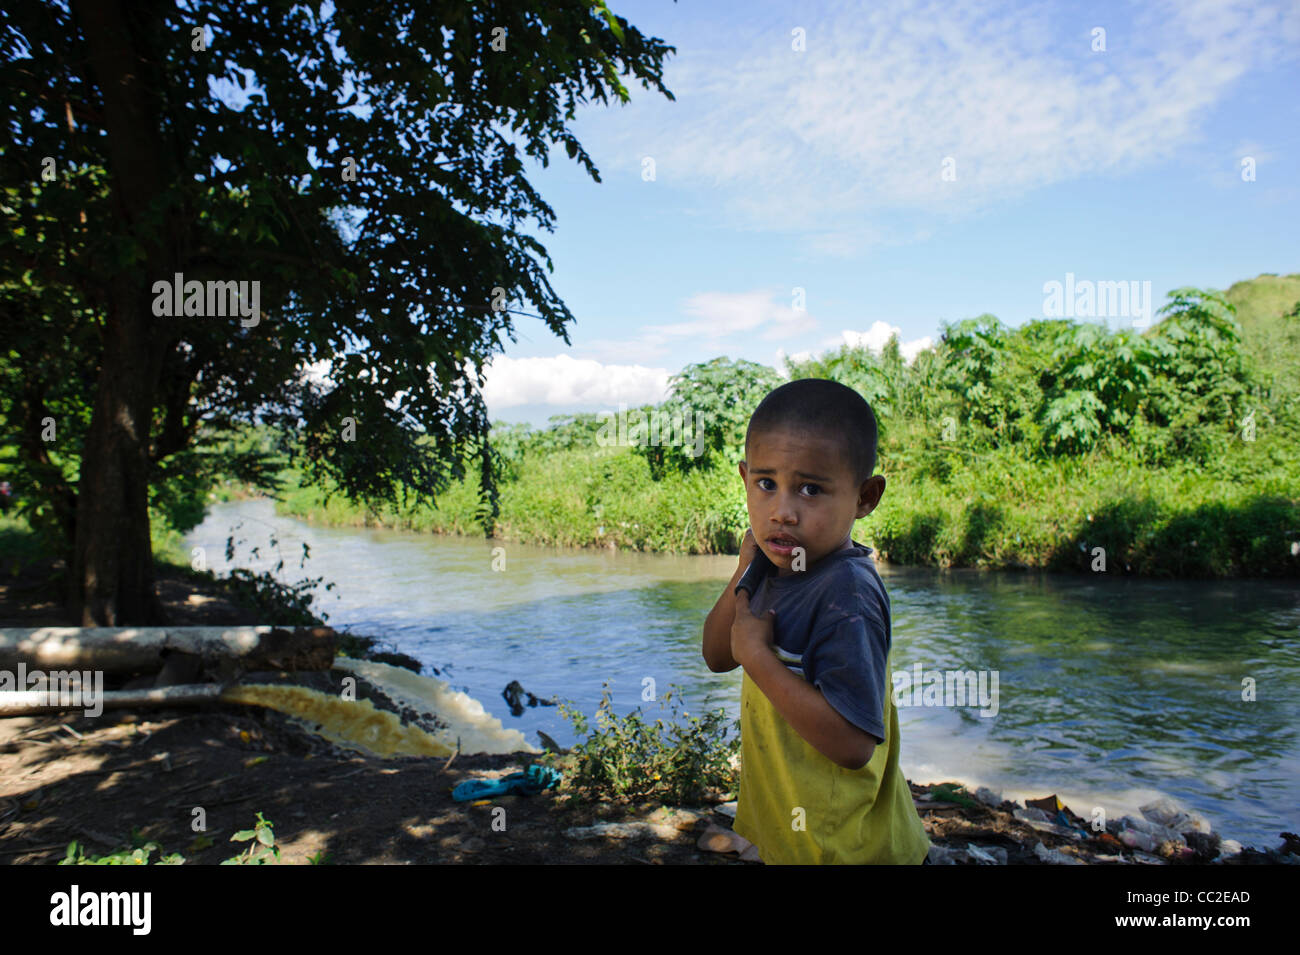 Water pollution with young boy beside effluent pipe draining into river in San Pedro Sula - Stock Image